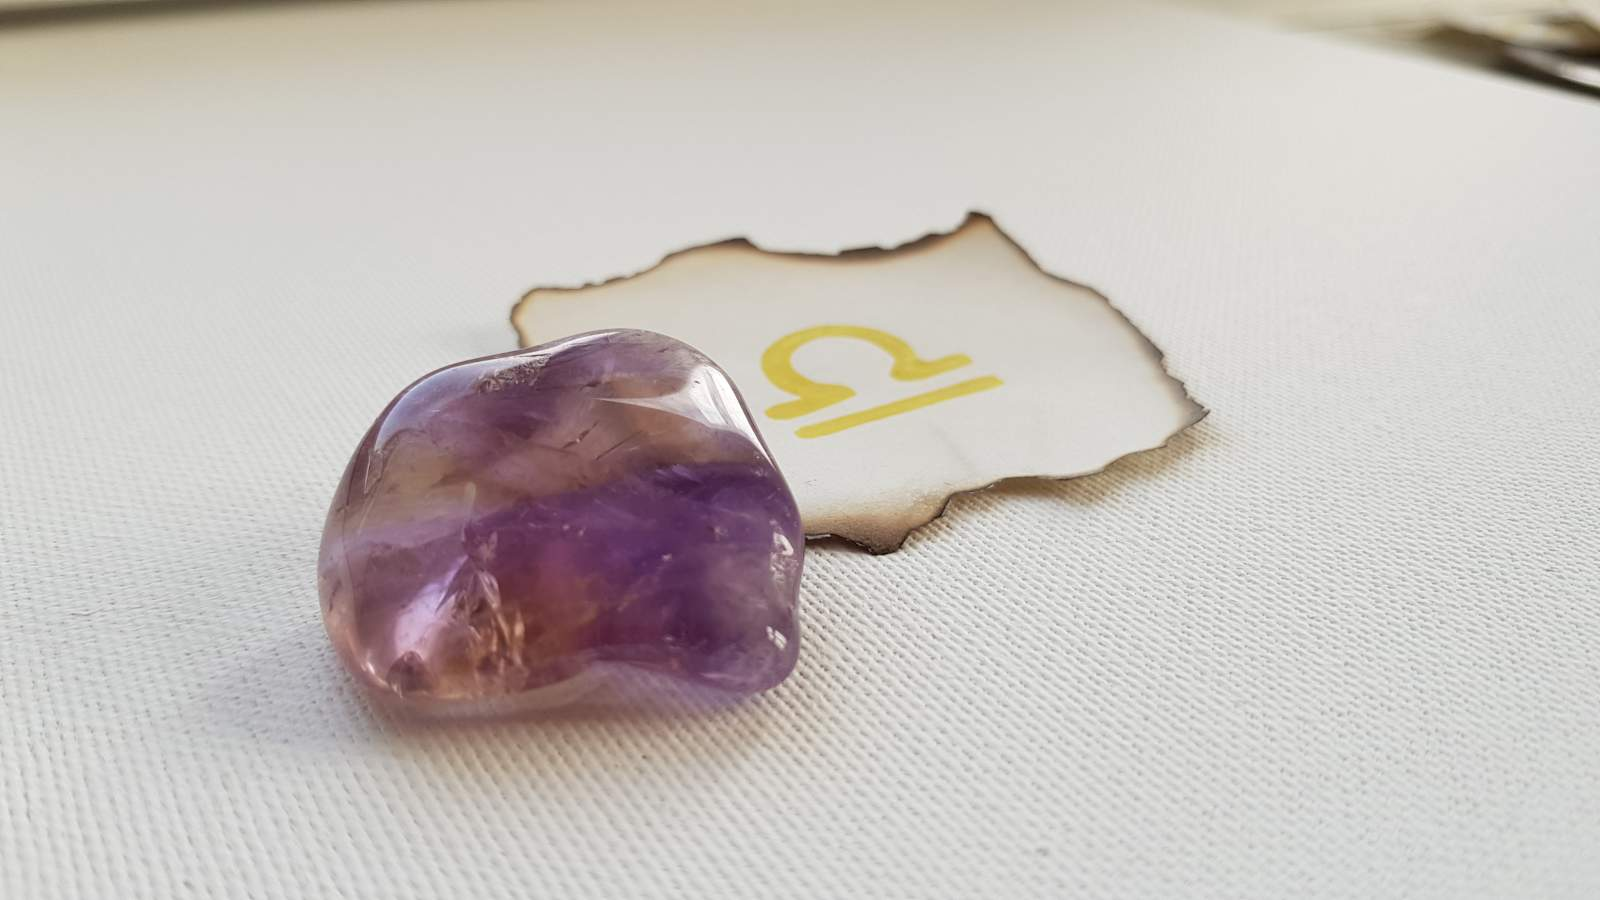 Gemstone - Libra 2019 Love Horoscope